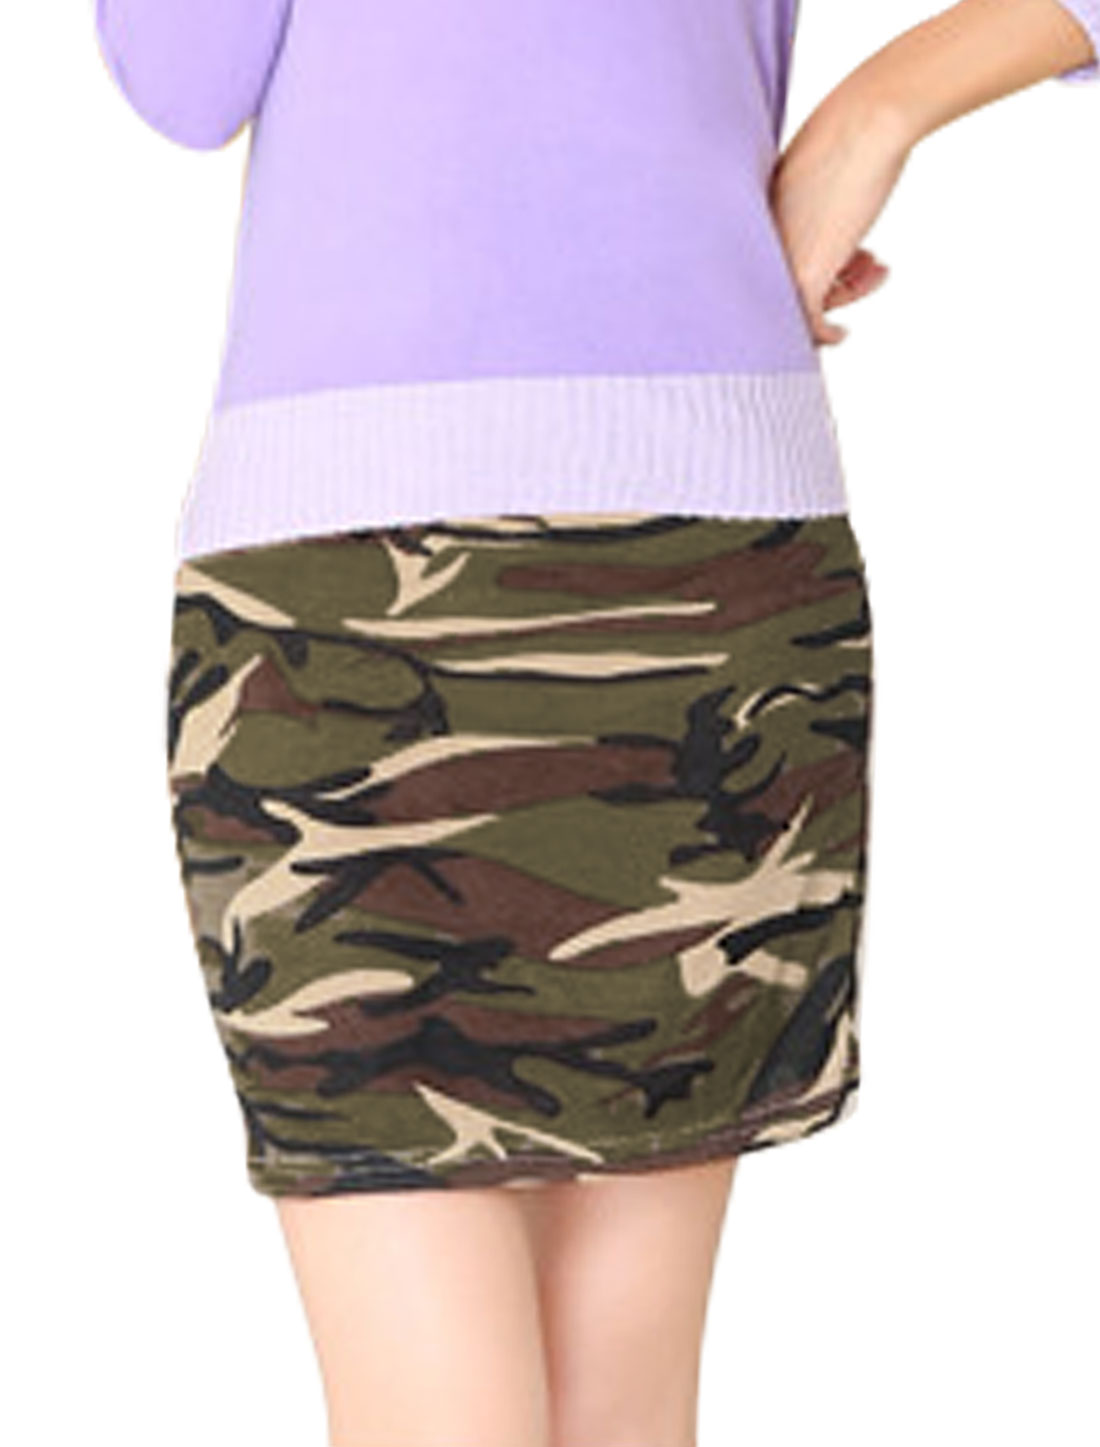 Women Elegant Allover Camo Print Over Hip Design Mini Skirt Beige Army Green XS